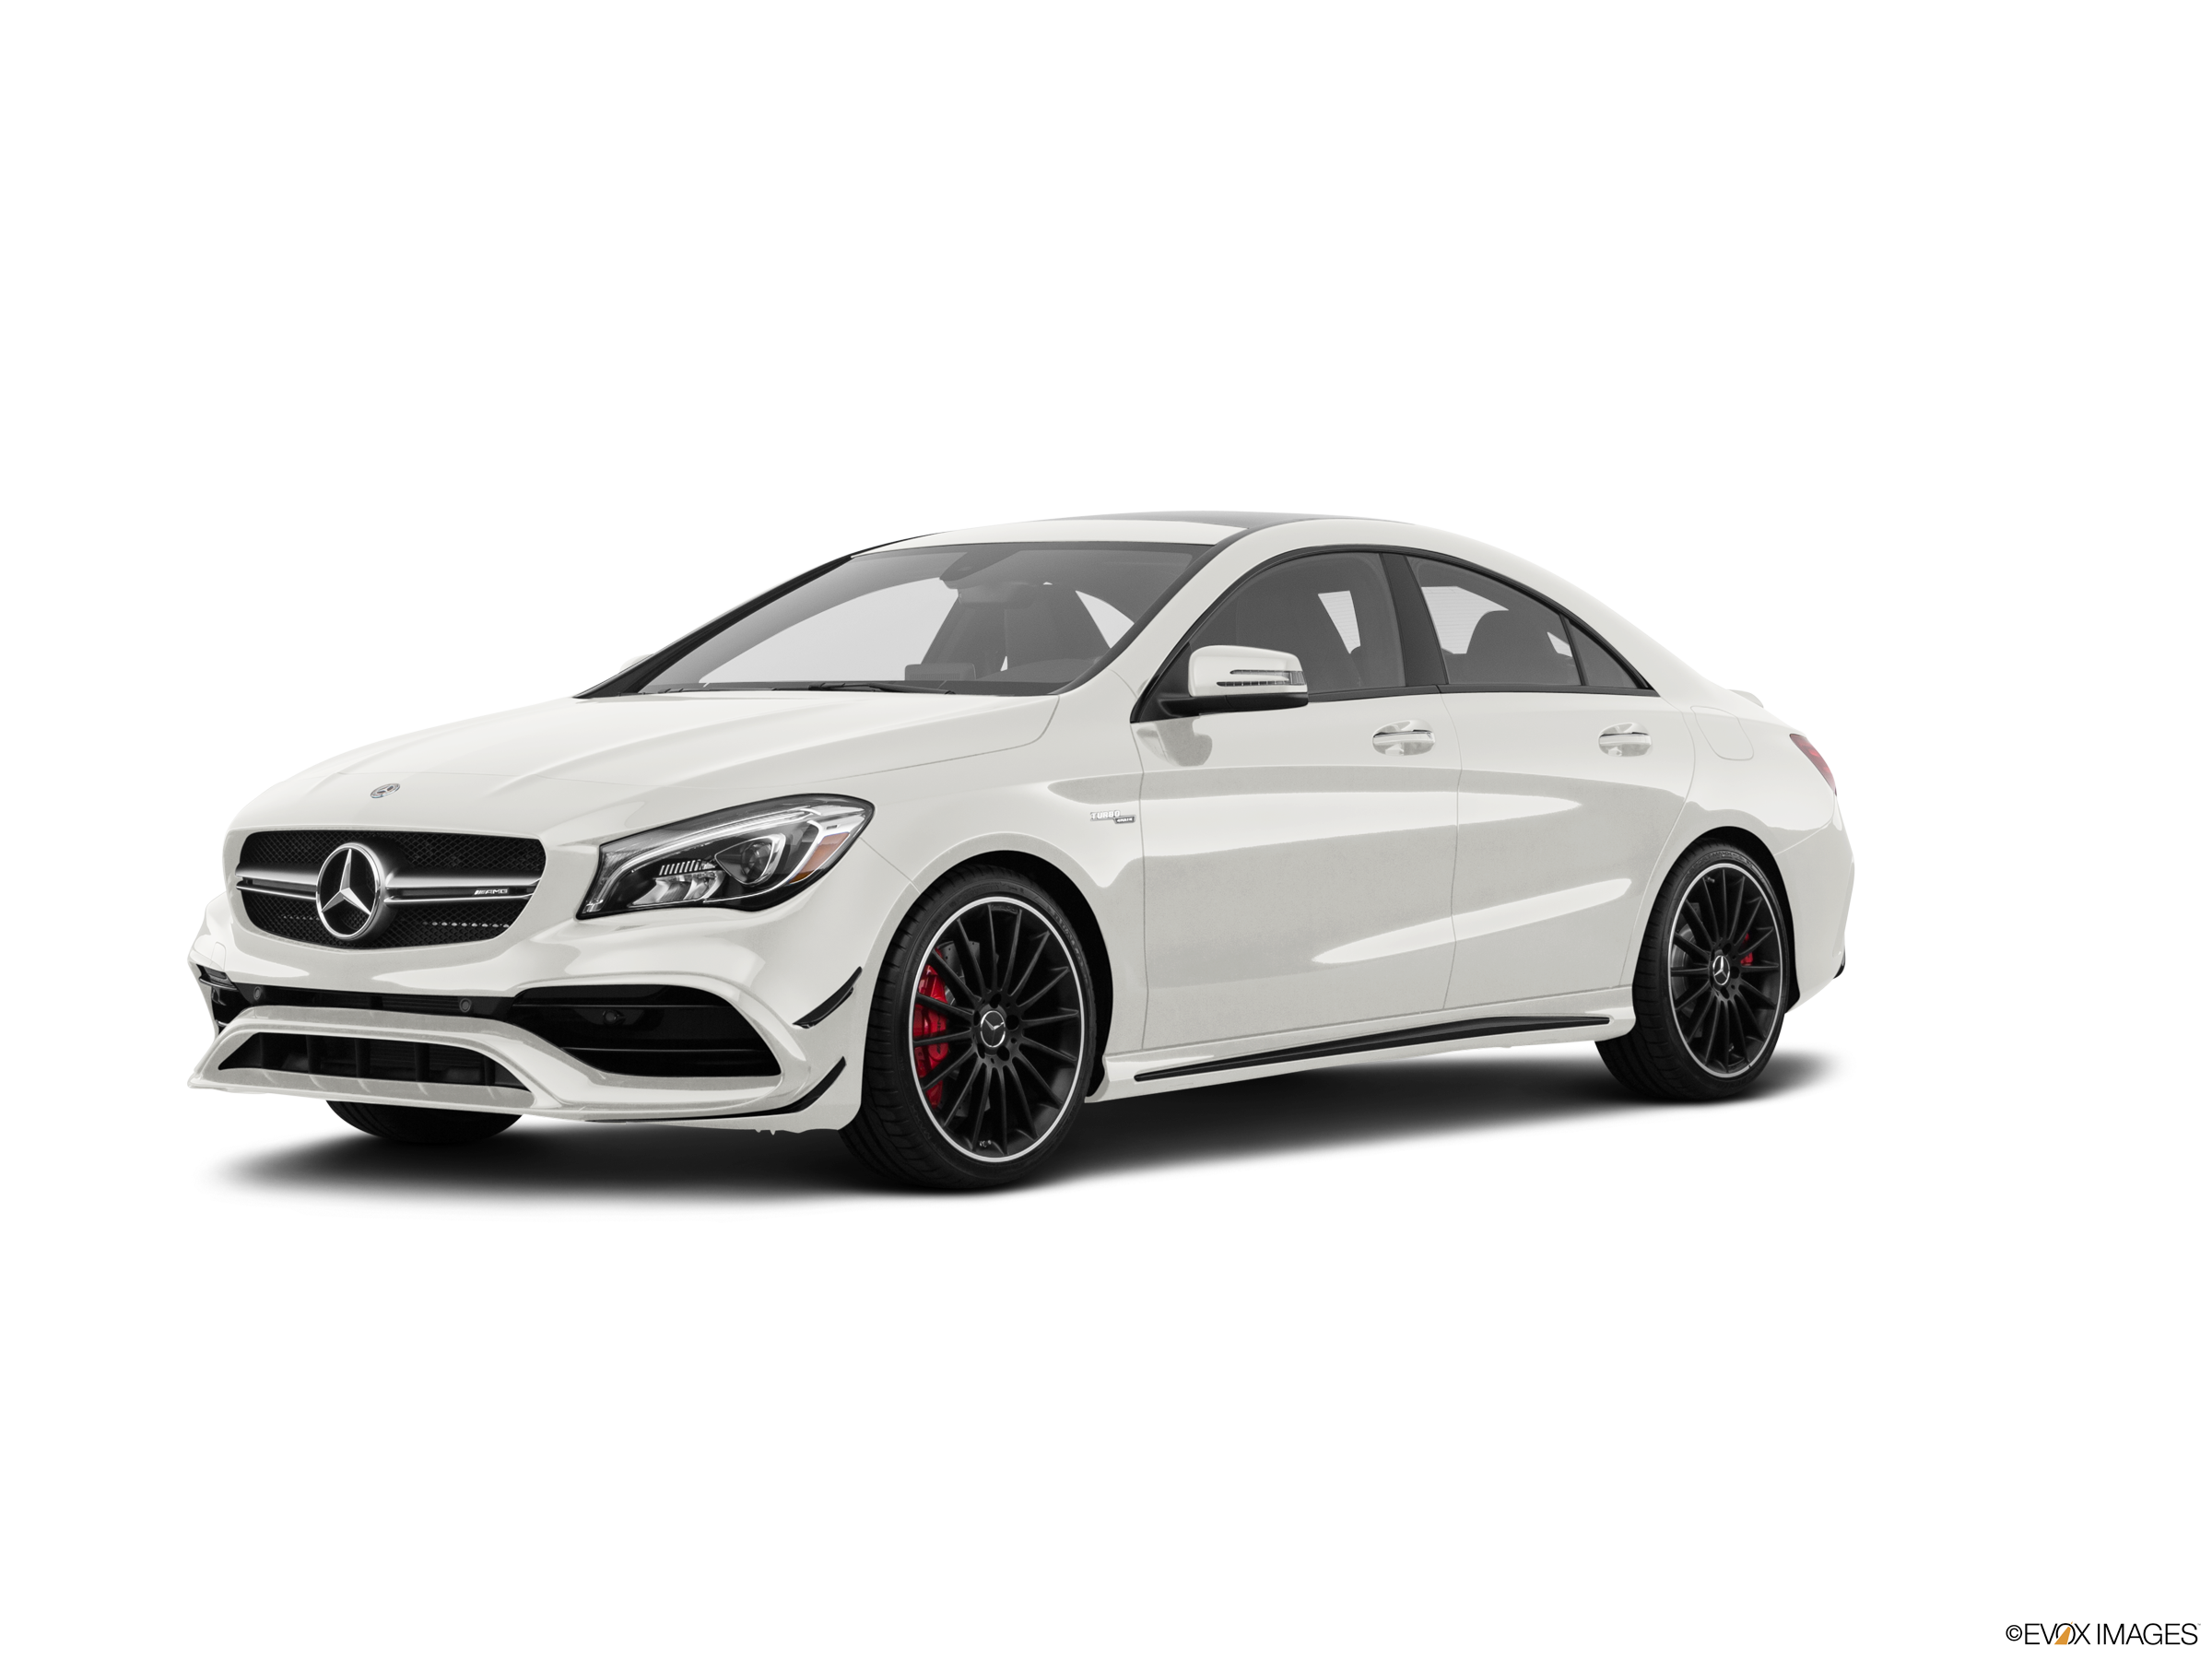 Top Expert Rated Coupes of 2018 - 2018 Mercedes-Benz Mercedes-AMG CLA